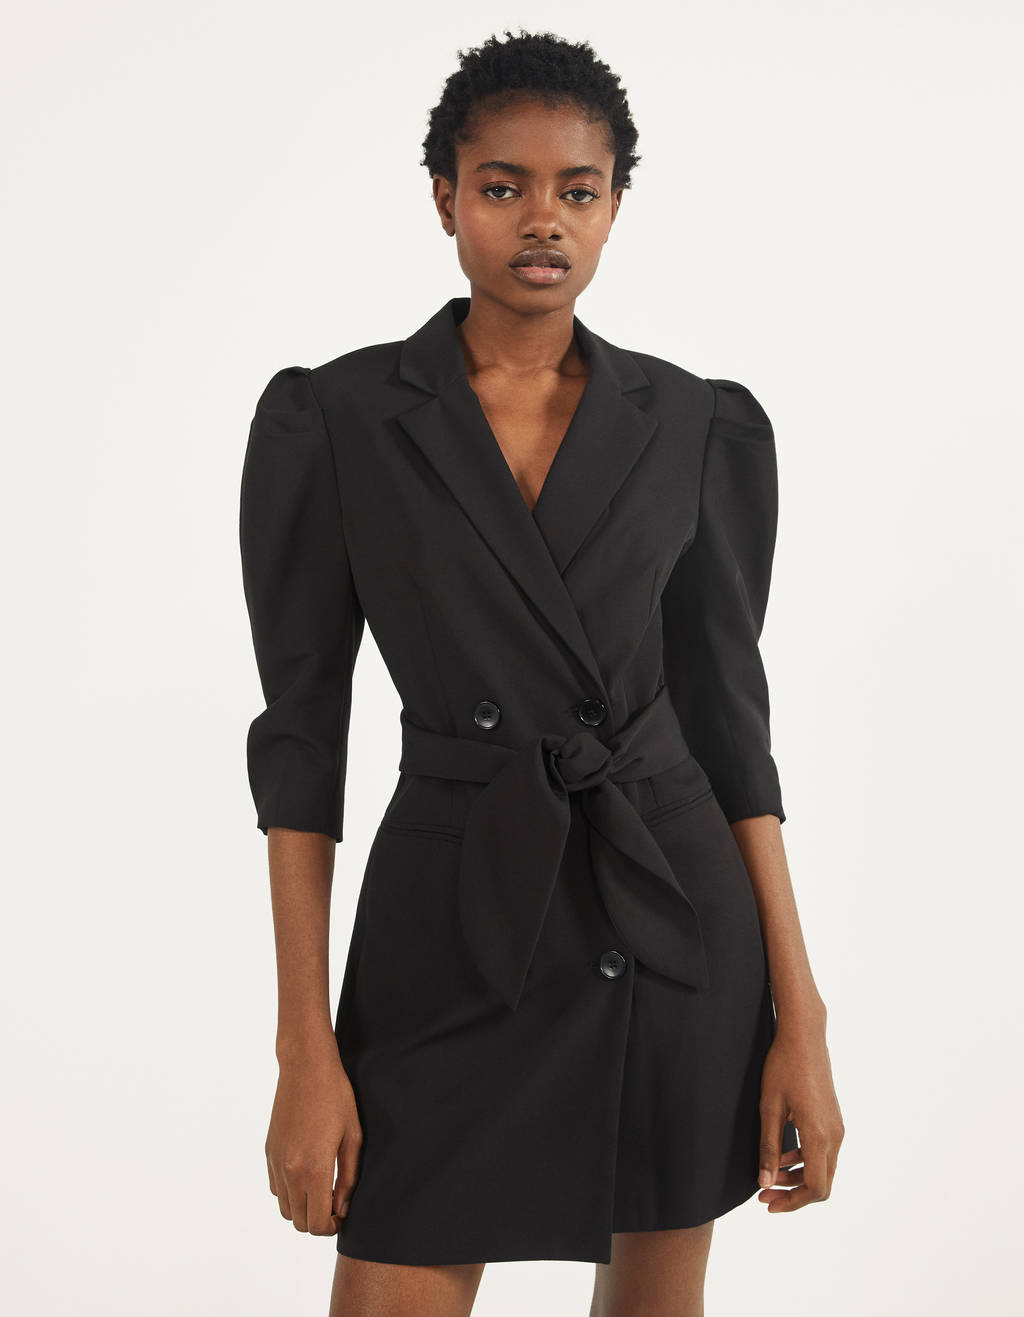 Full sleeve blazer dress